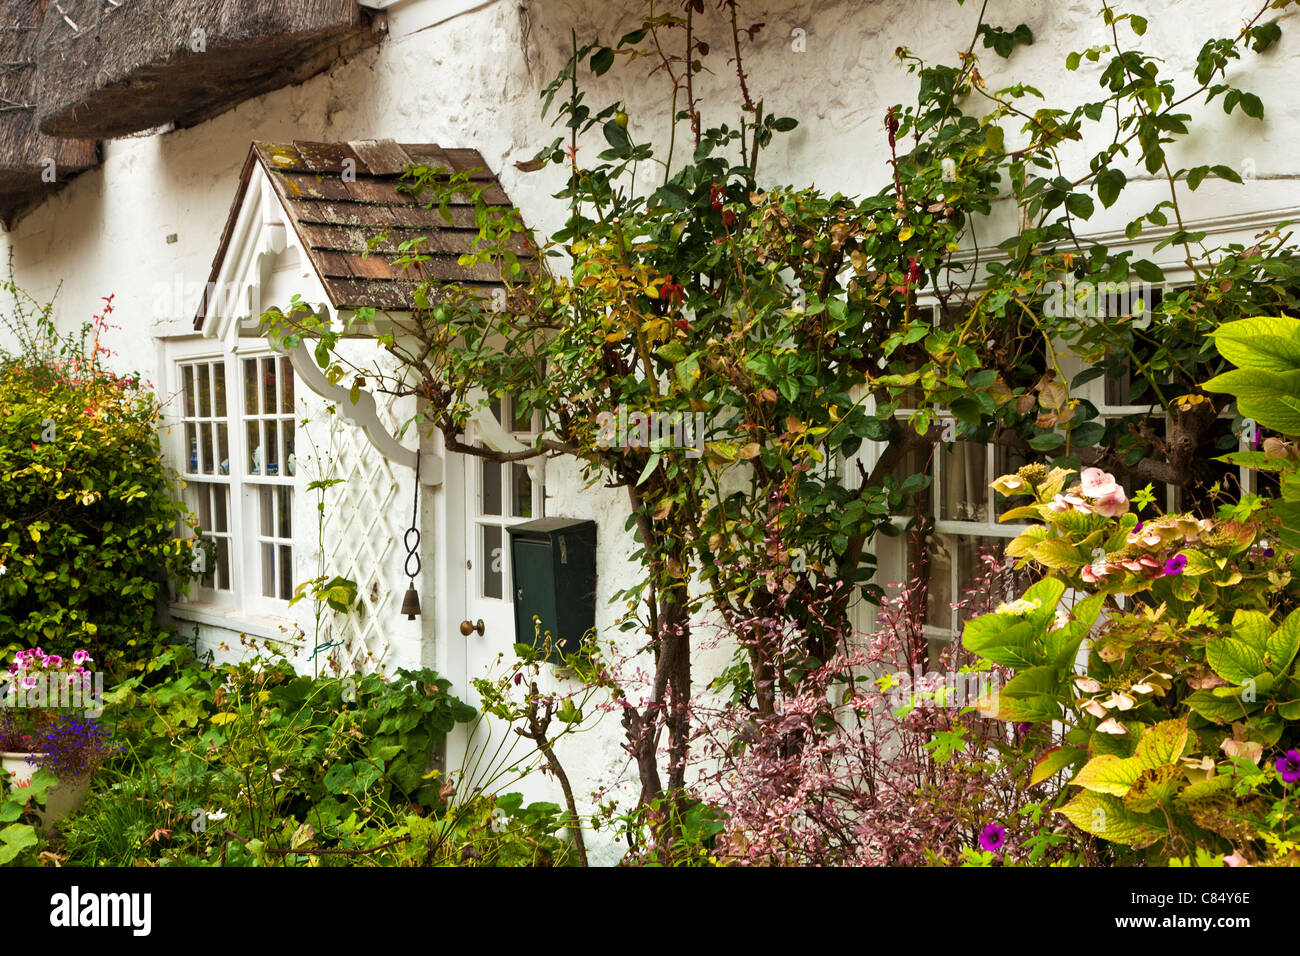 Typical English country village cottage in late autumn in Avebury, Wiltshire, England, UK - Stock Image